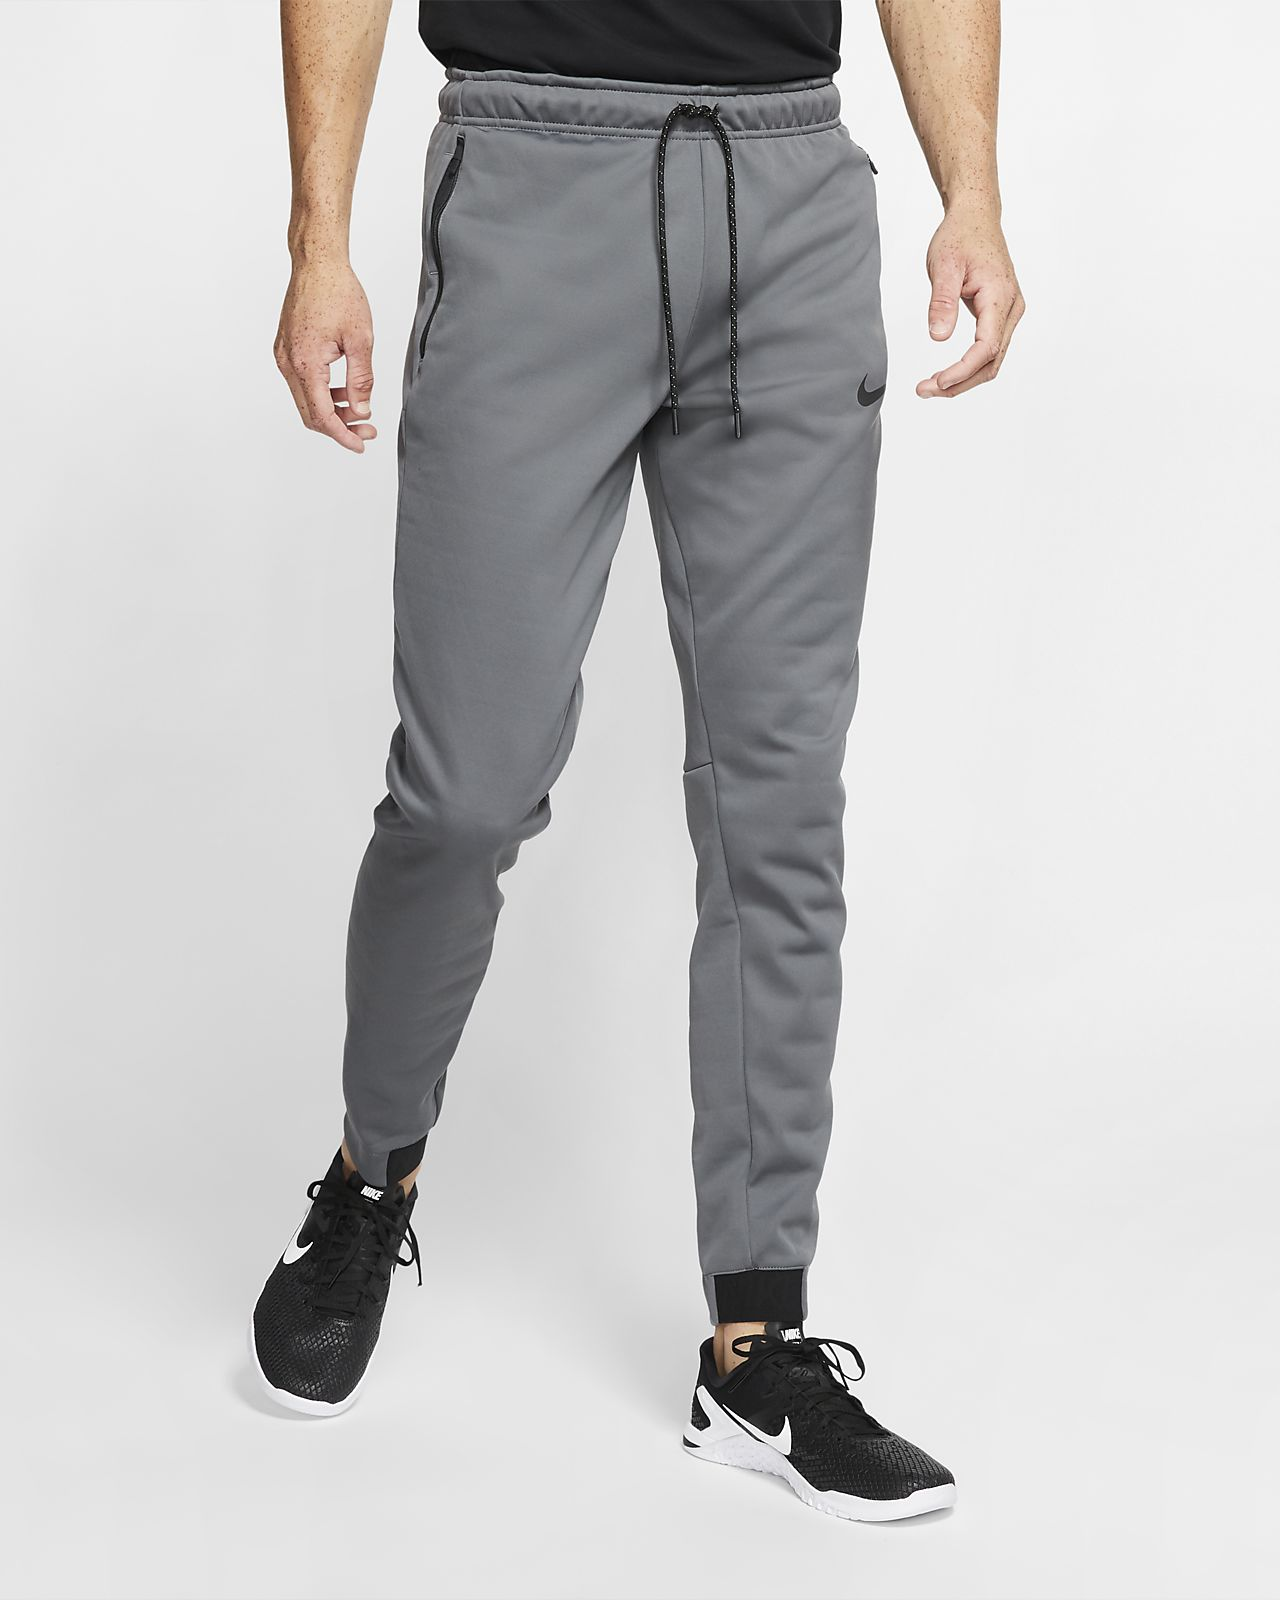 Nike Therma Sphere Men's Training Trousers